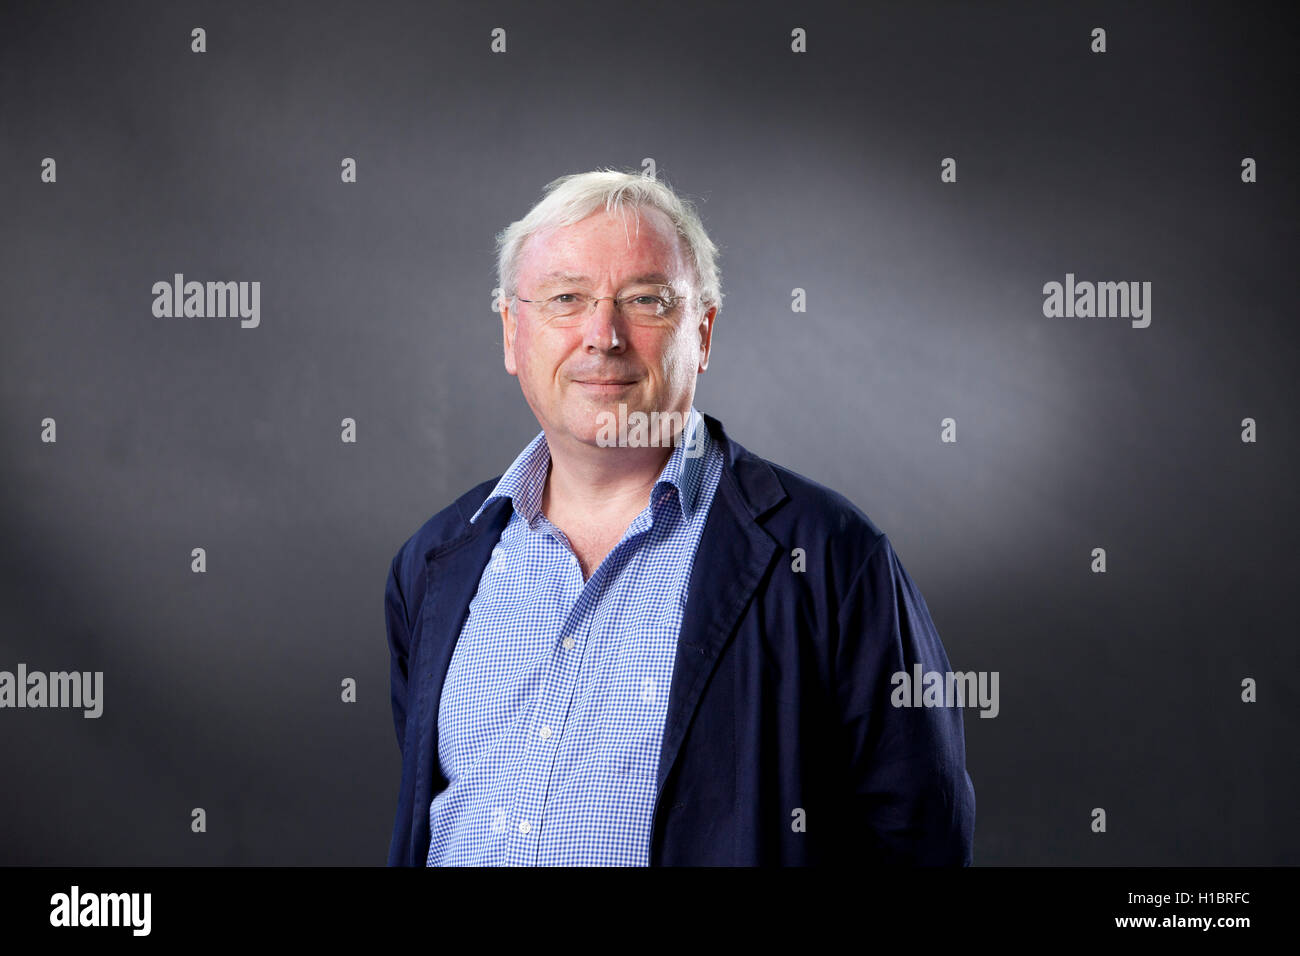 Richard Murphy, the British chartered accountant and political economist who campaigns on issues of tax avoidance - Stock Image